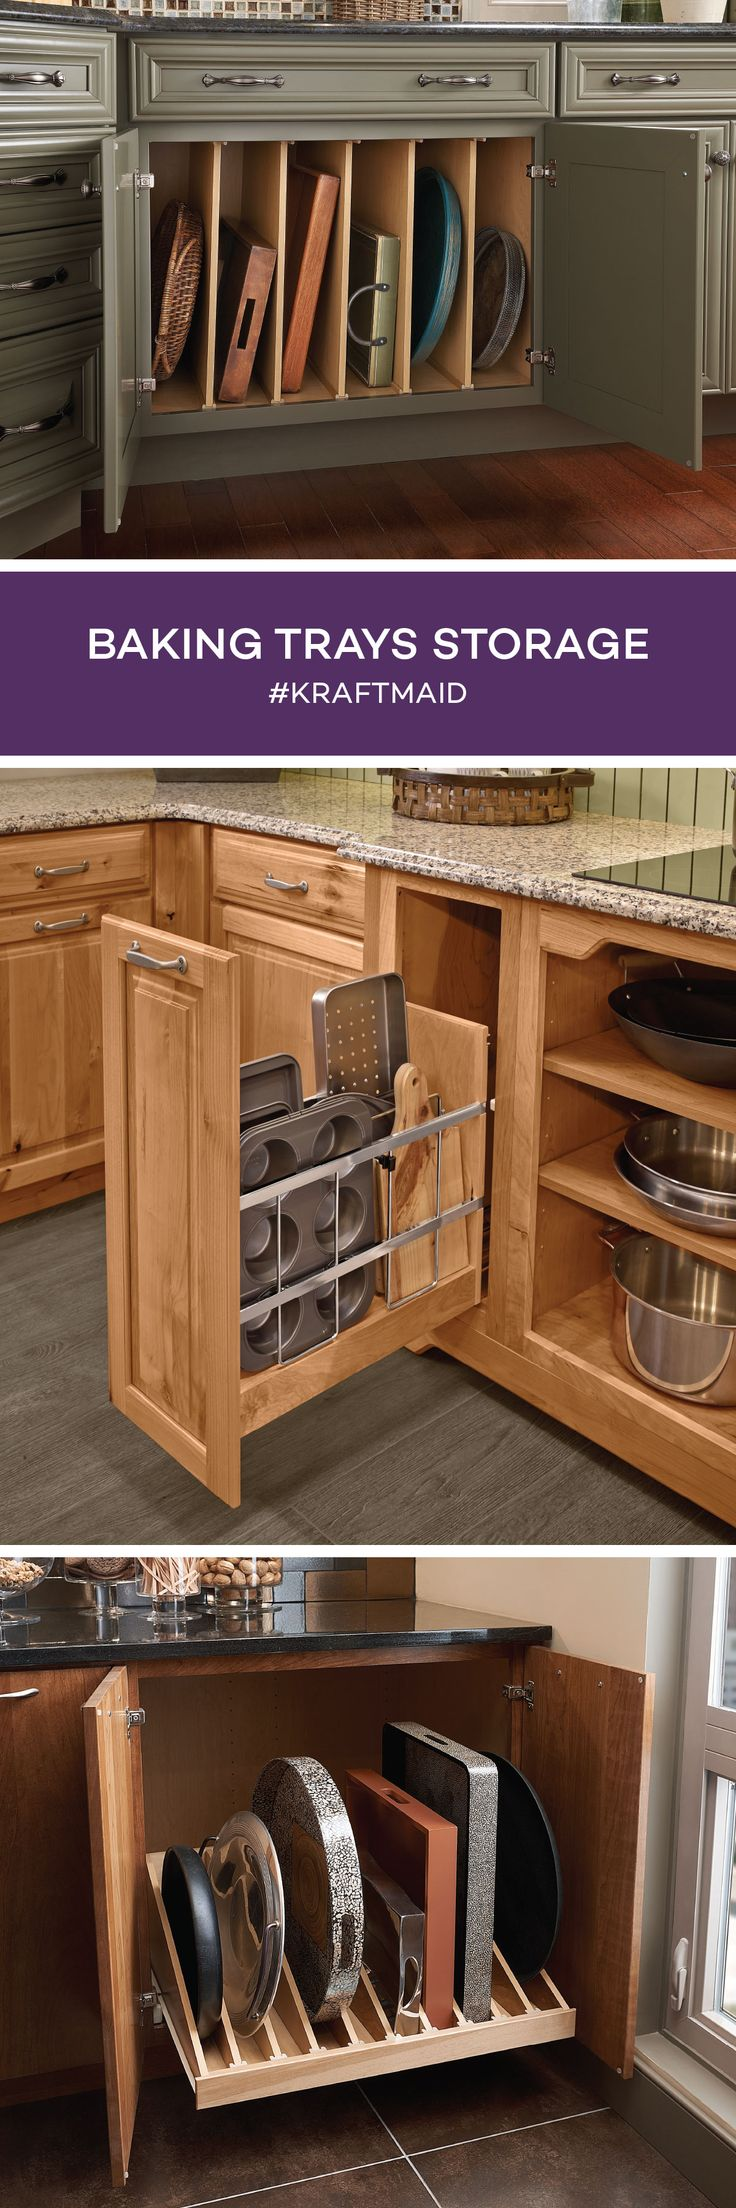 Kitchen cabinet tremendous corner base sink cabinet with half moon - Find This Pin And More On Kraftmaid Kitchen Bath Storage Ideas